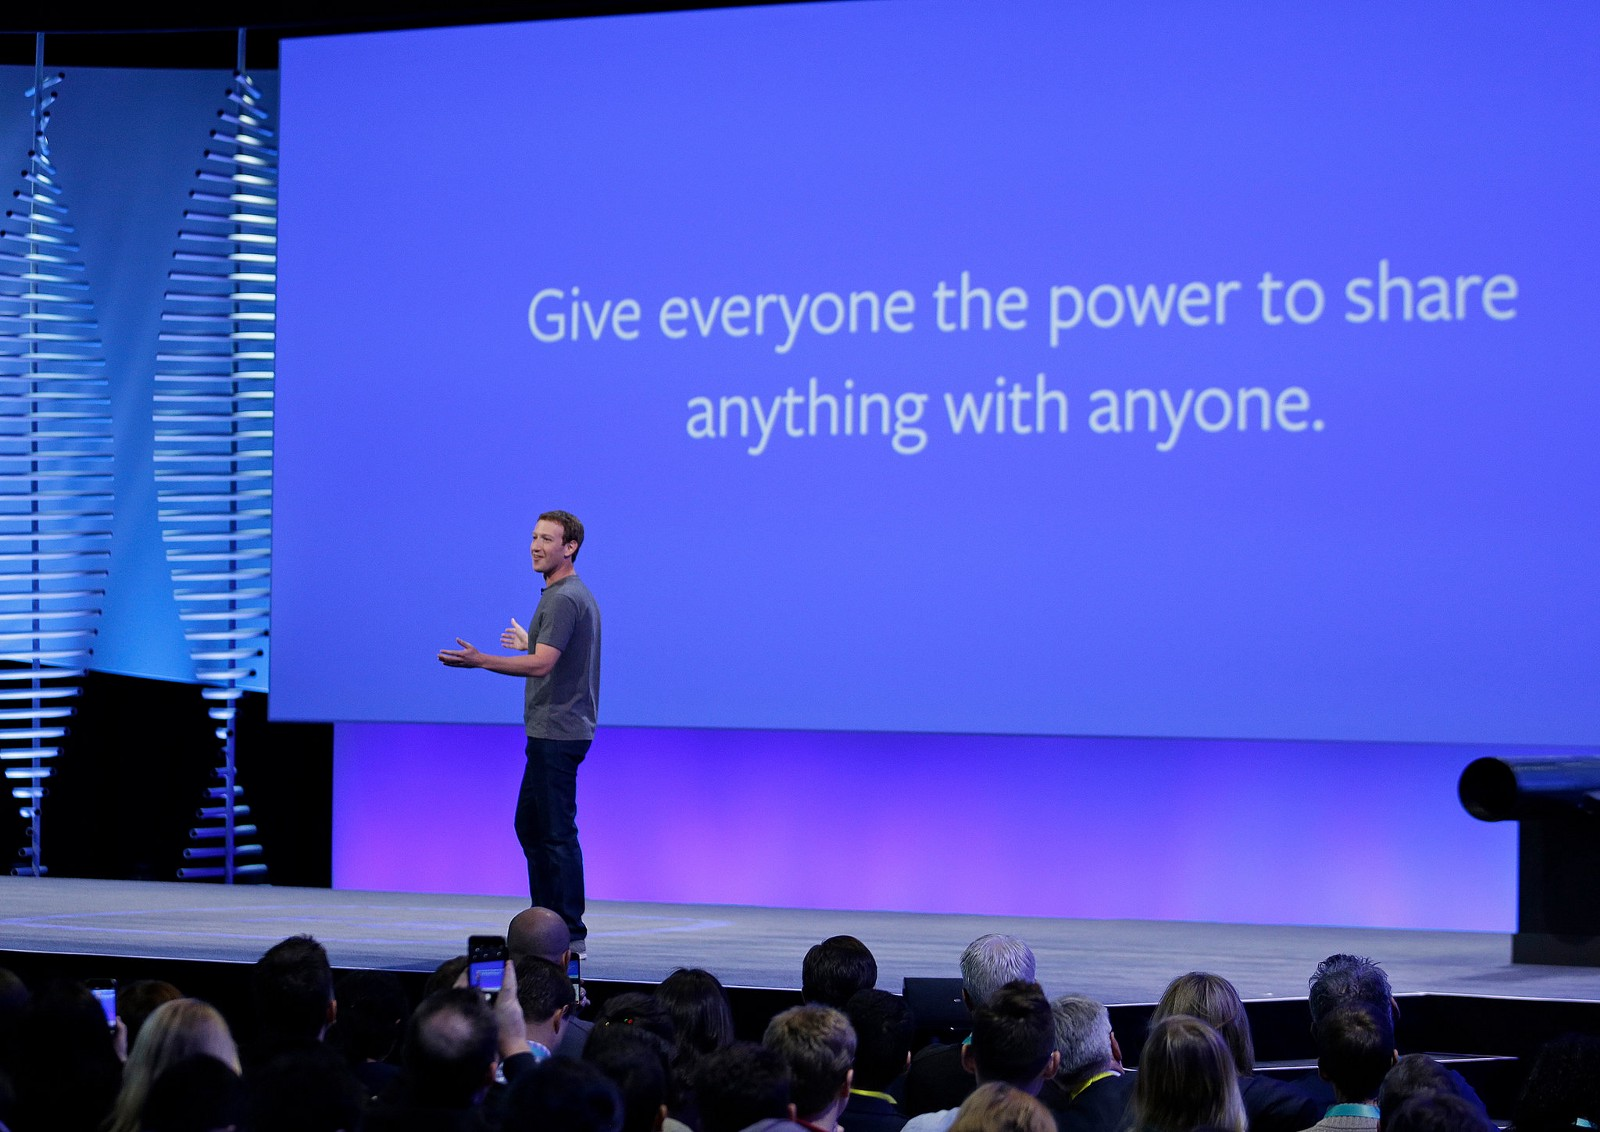 Image of Mark Zuckerberg and a big title: